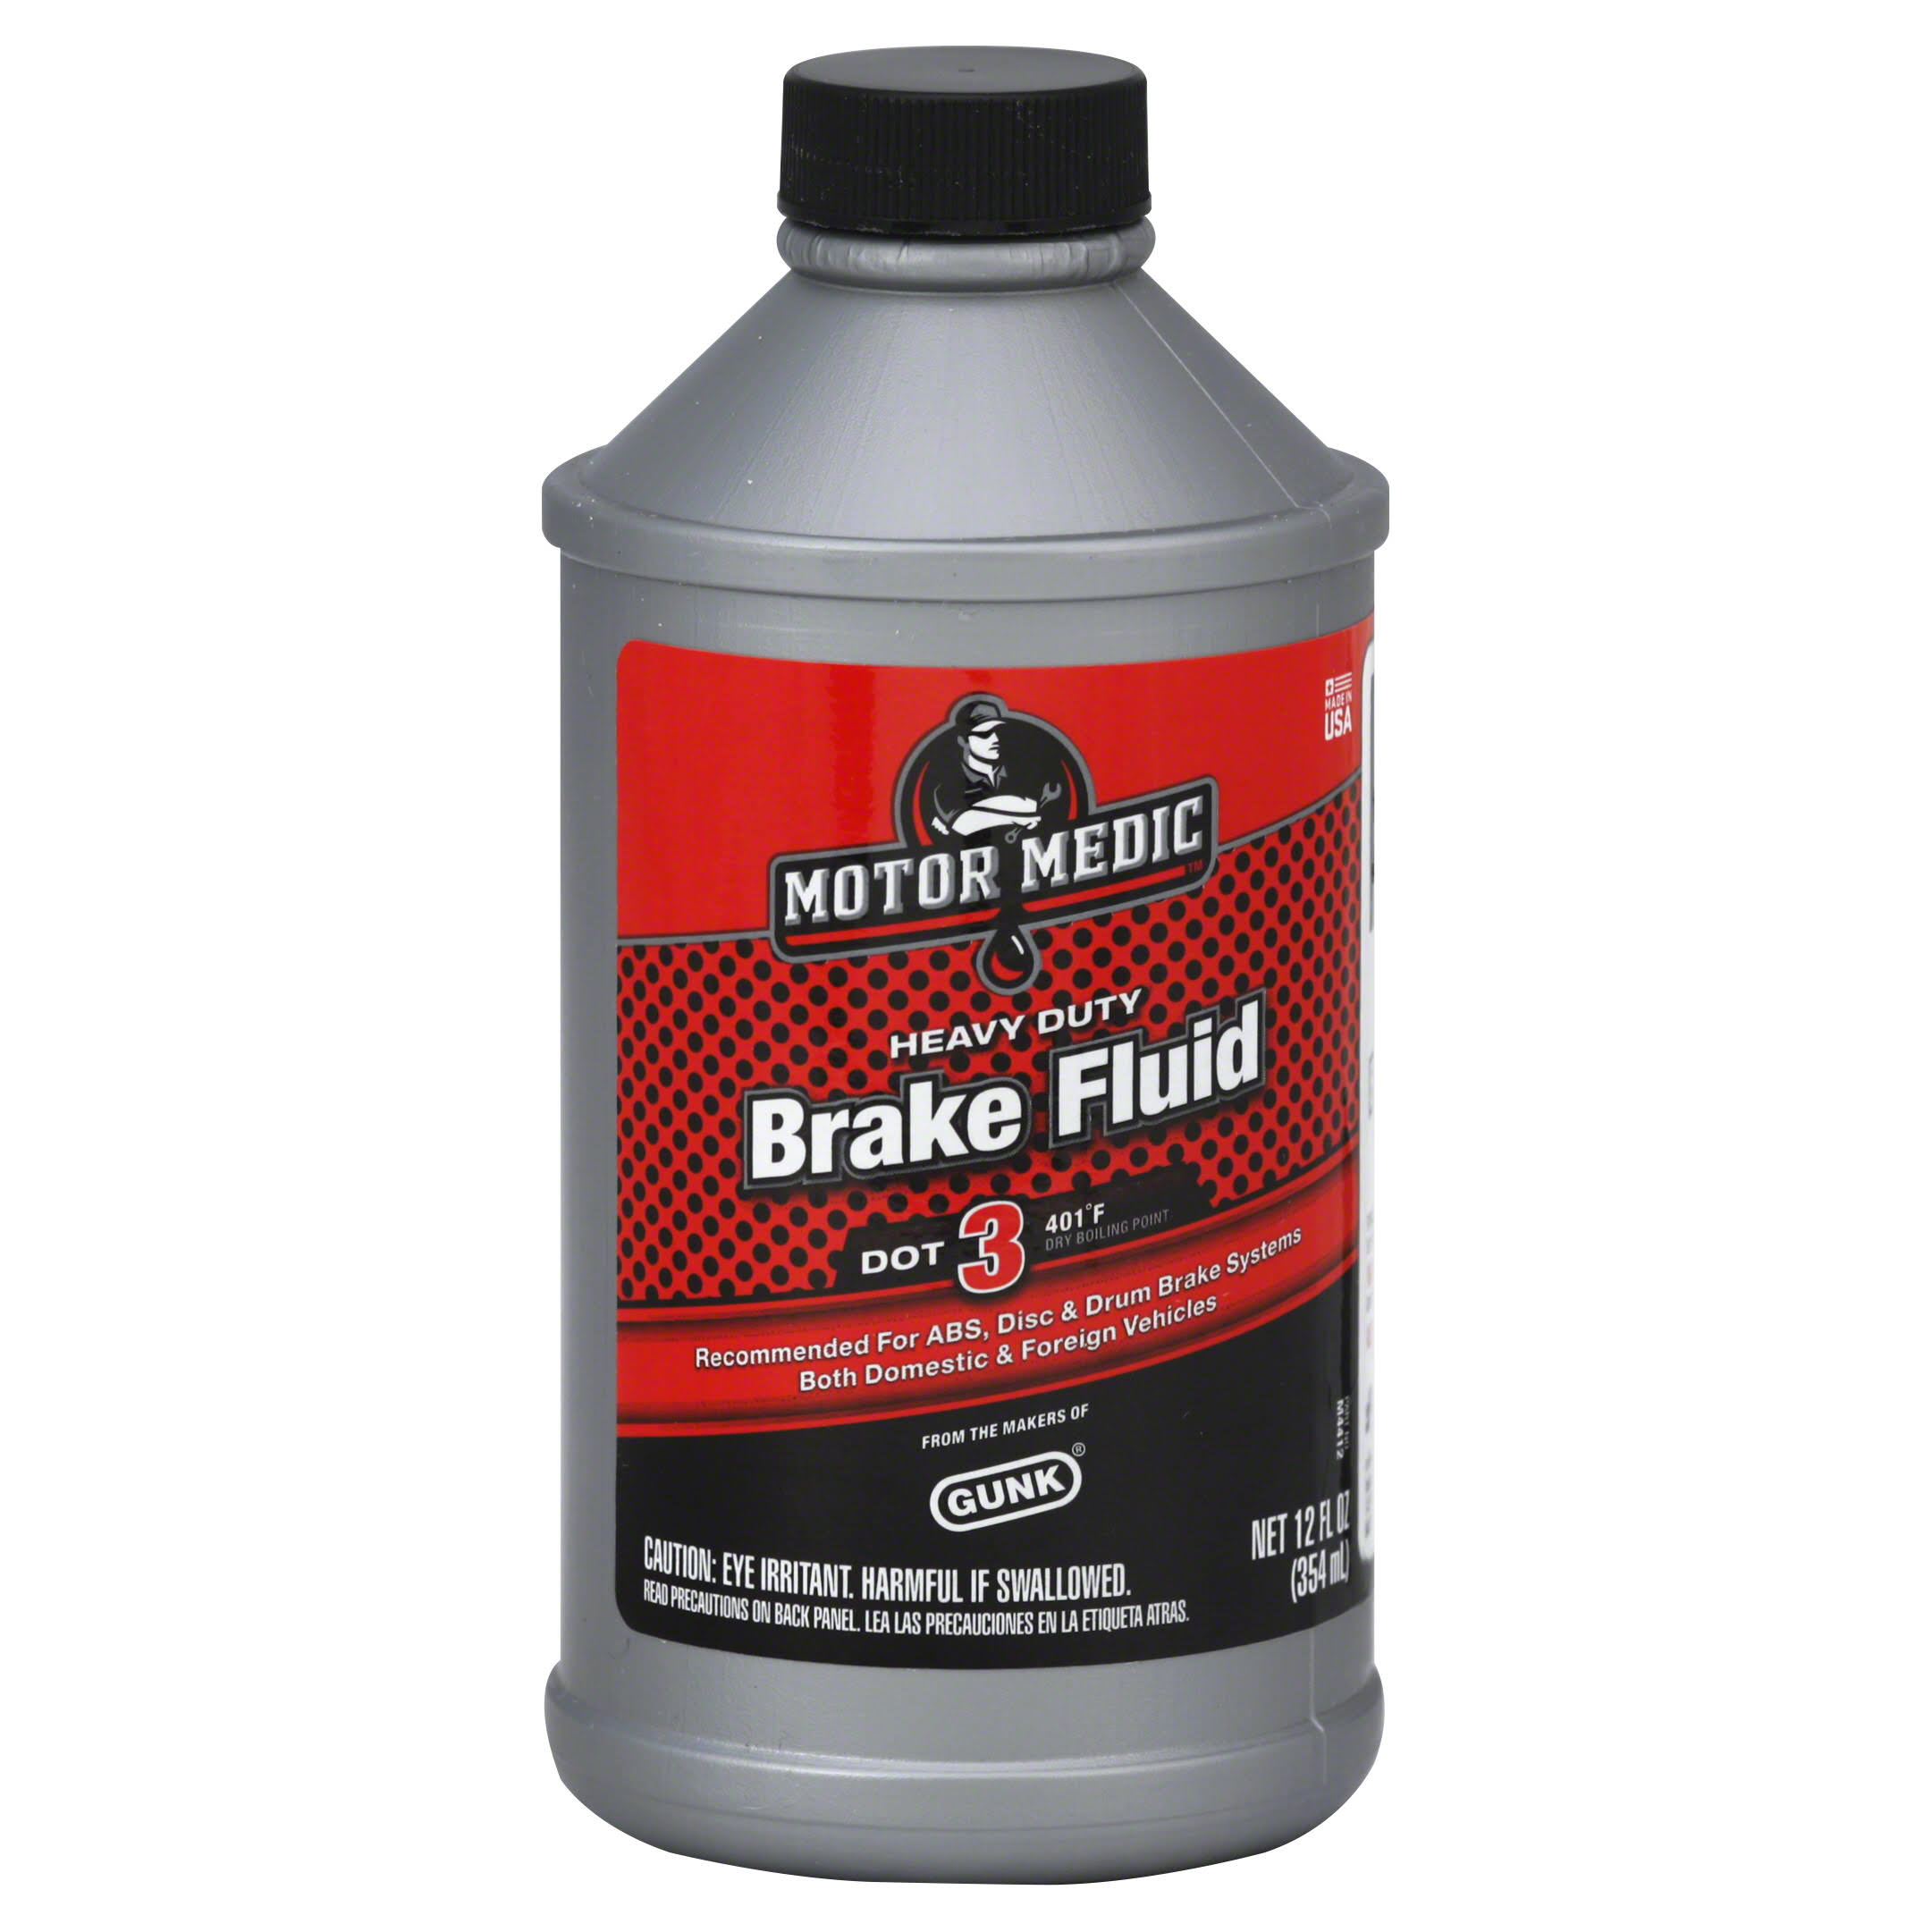 Motormedic M4412 Dot 3 Brake Fluid - 12oz